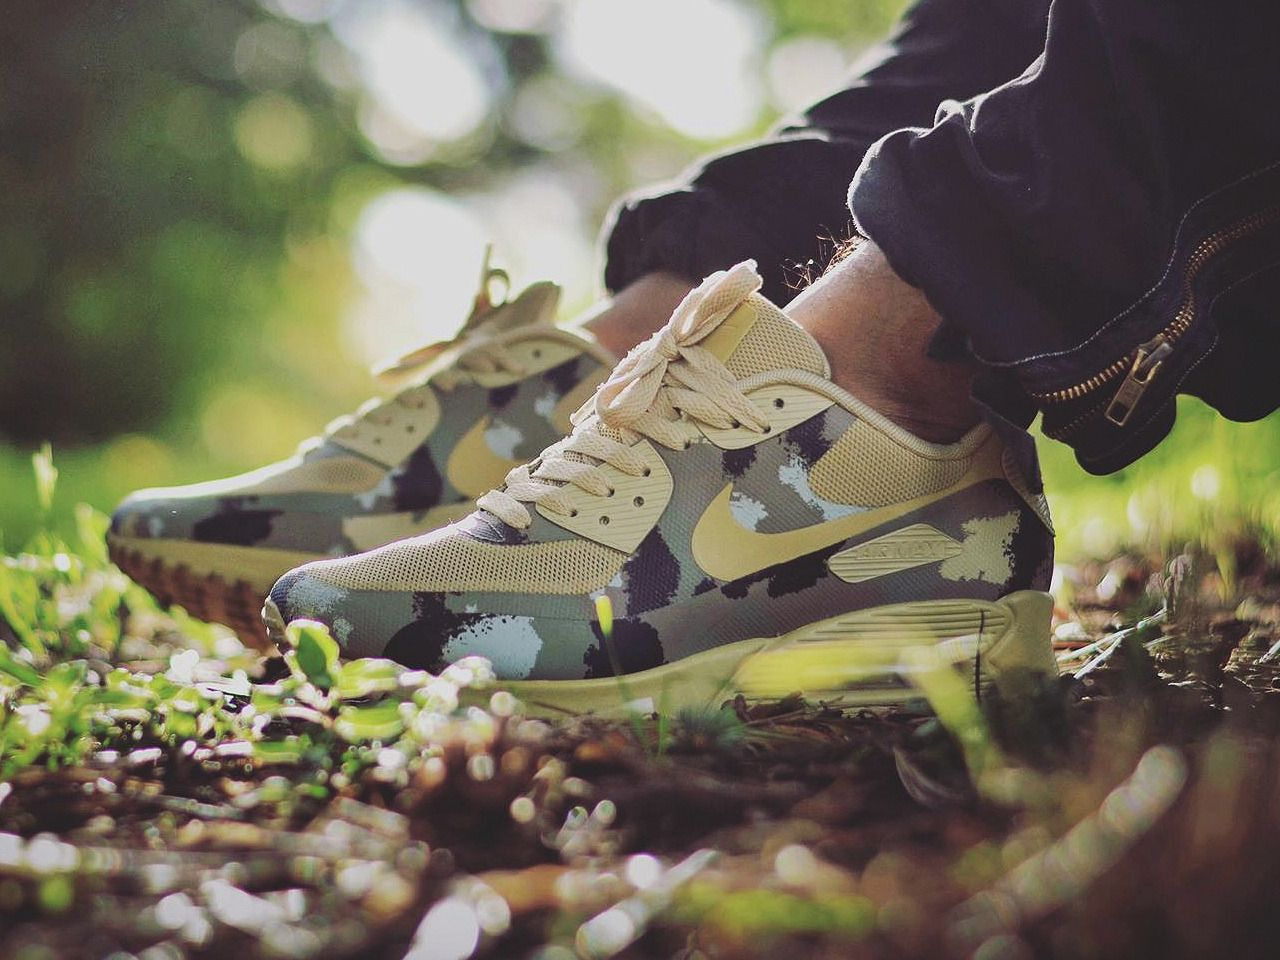 finest selection 4033d a1c88 Nike Air Max 90 Hyperfuse  Camo Pack  Italy - 2013 (by teambourbier)